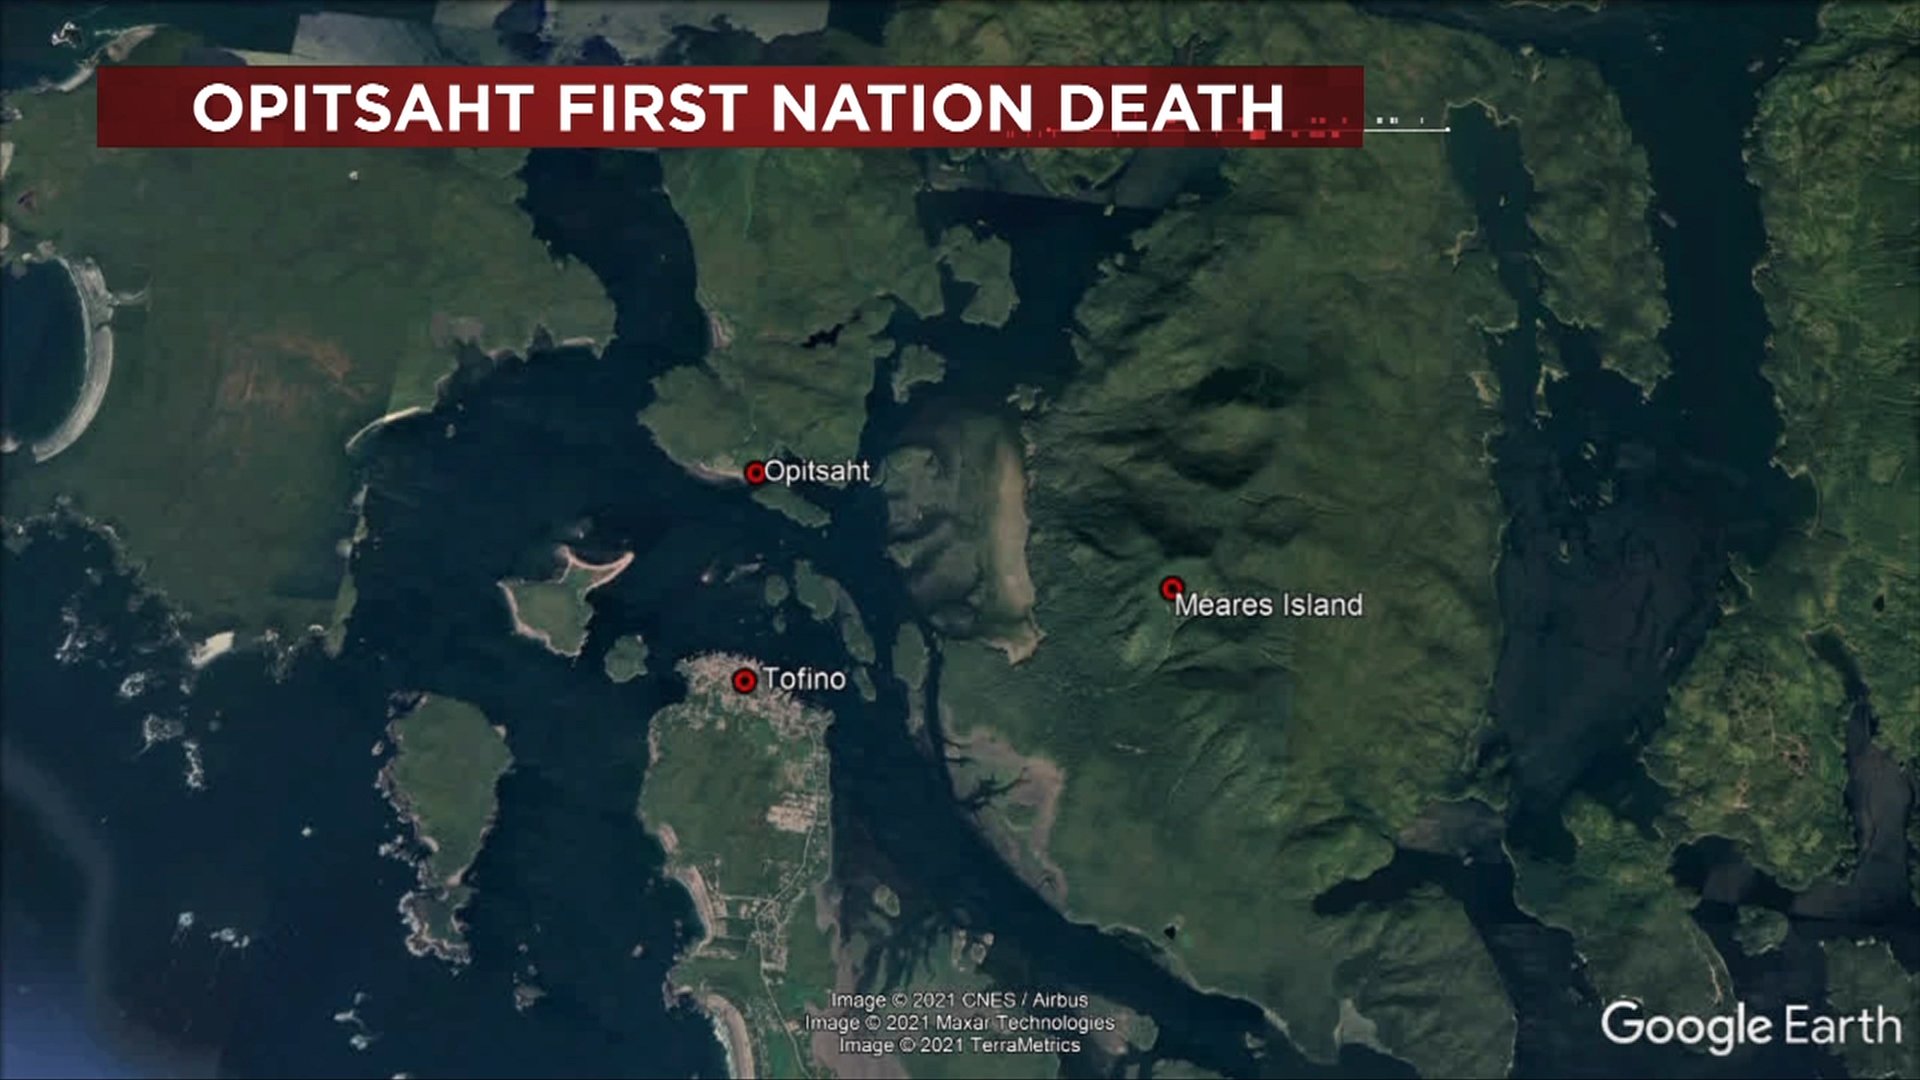 Map of Opitsaht First Nation